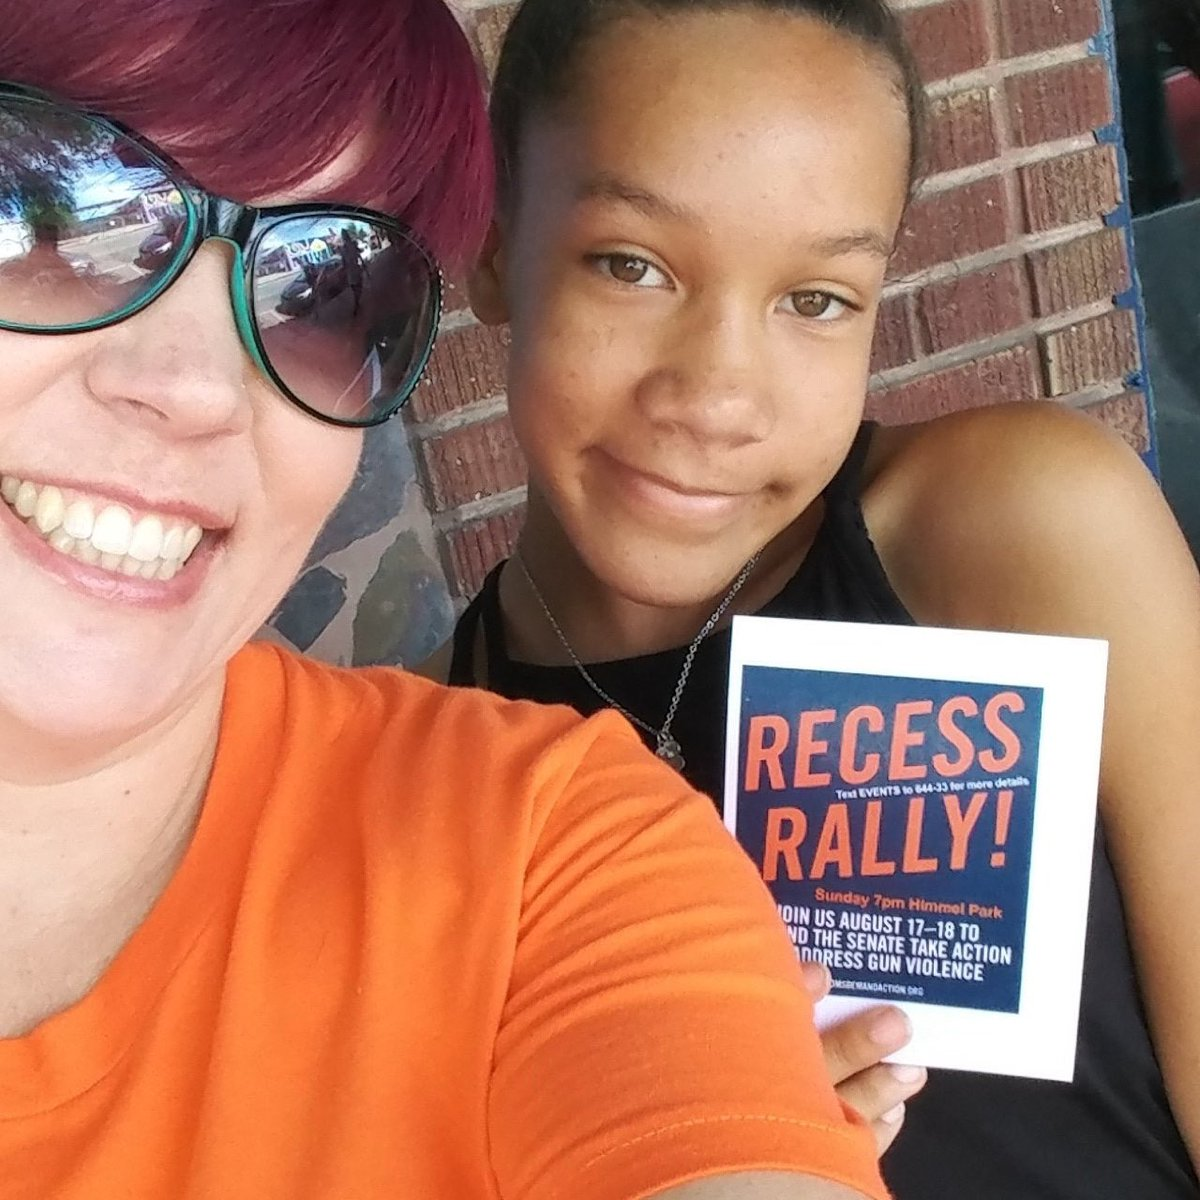 Did you miss a #RecessRally today? Good news: there are lots more on Sunday. Text RALLY to 644-33 and join us at an event near you on Sunday. Democracy isn't a spectator sport. And your Senators need to see that you demand action to stop gun violence.